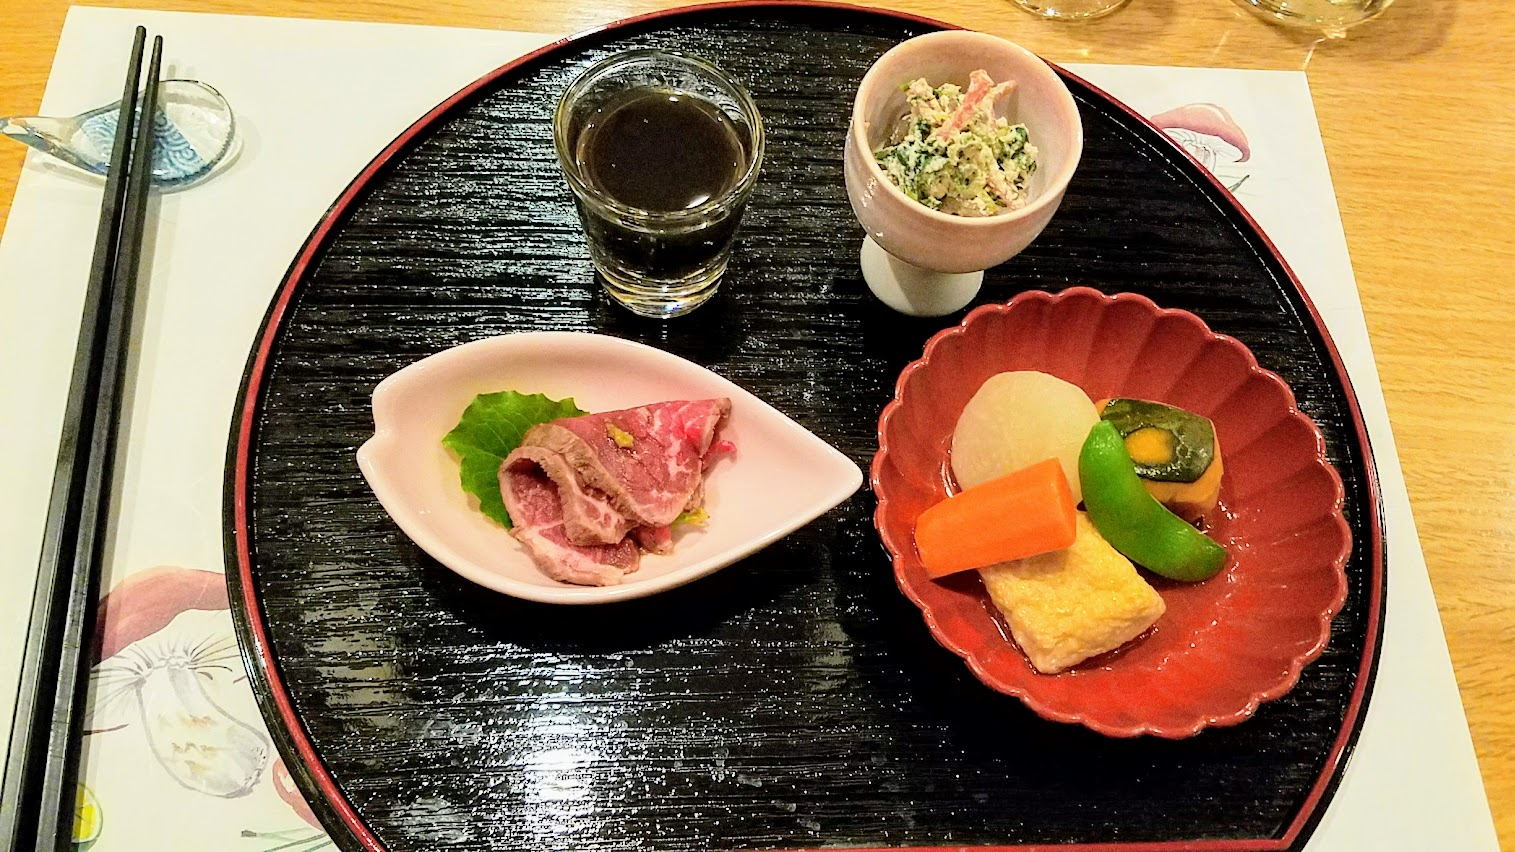 Dinner at Chef Naoko's Shizuku. I ordered the kaiseki, six courses that includes a catch of the day wild sashimi cousre and choice of main dish with rice and miso soup. This is from the second course, which offered four small side dishes height=